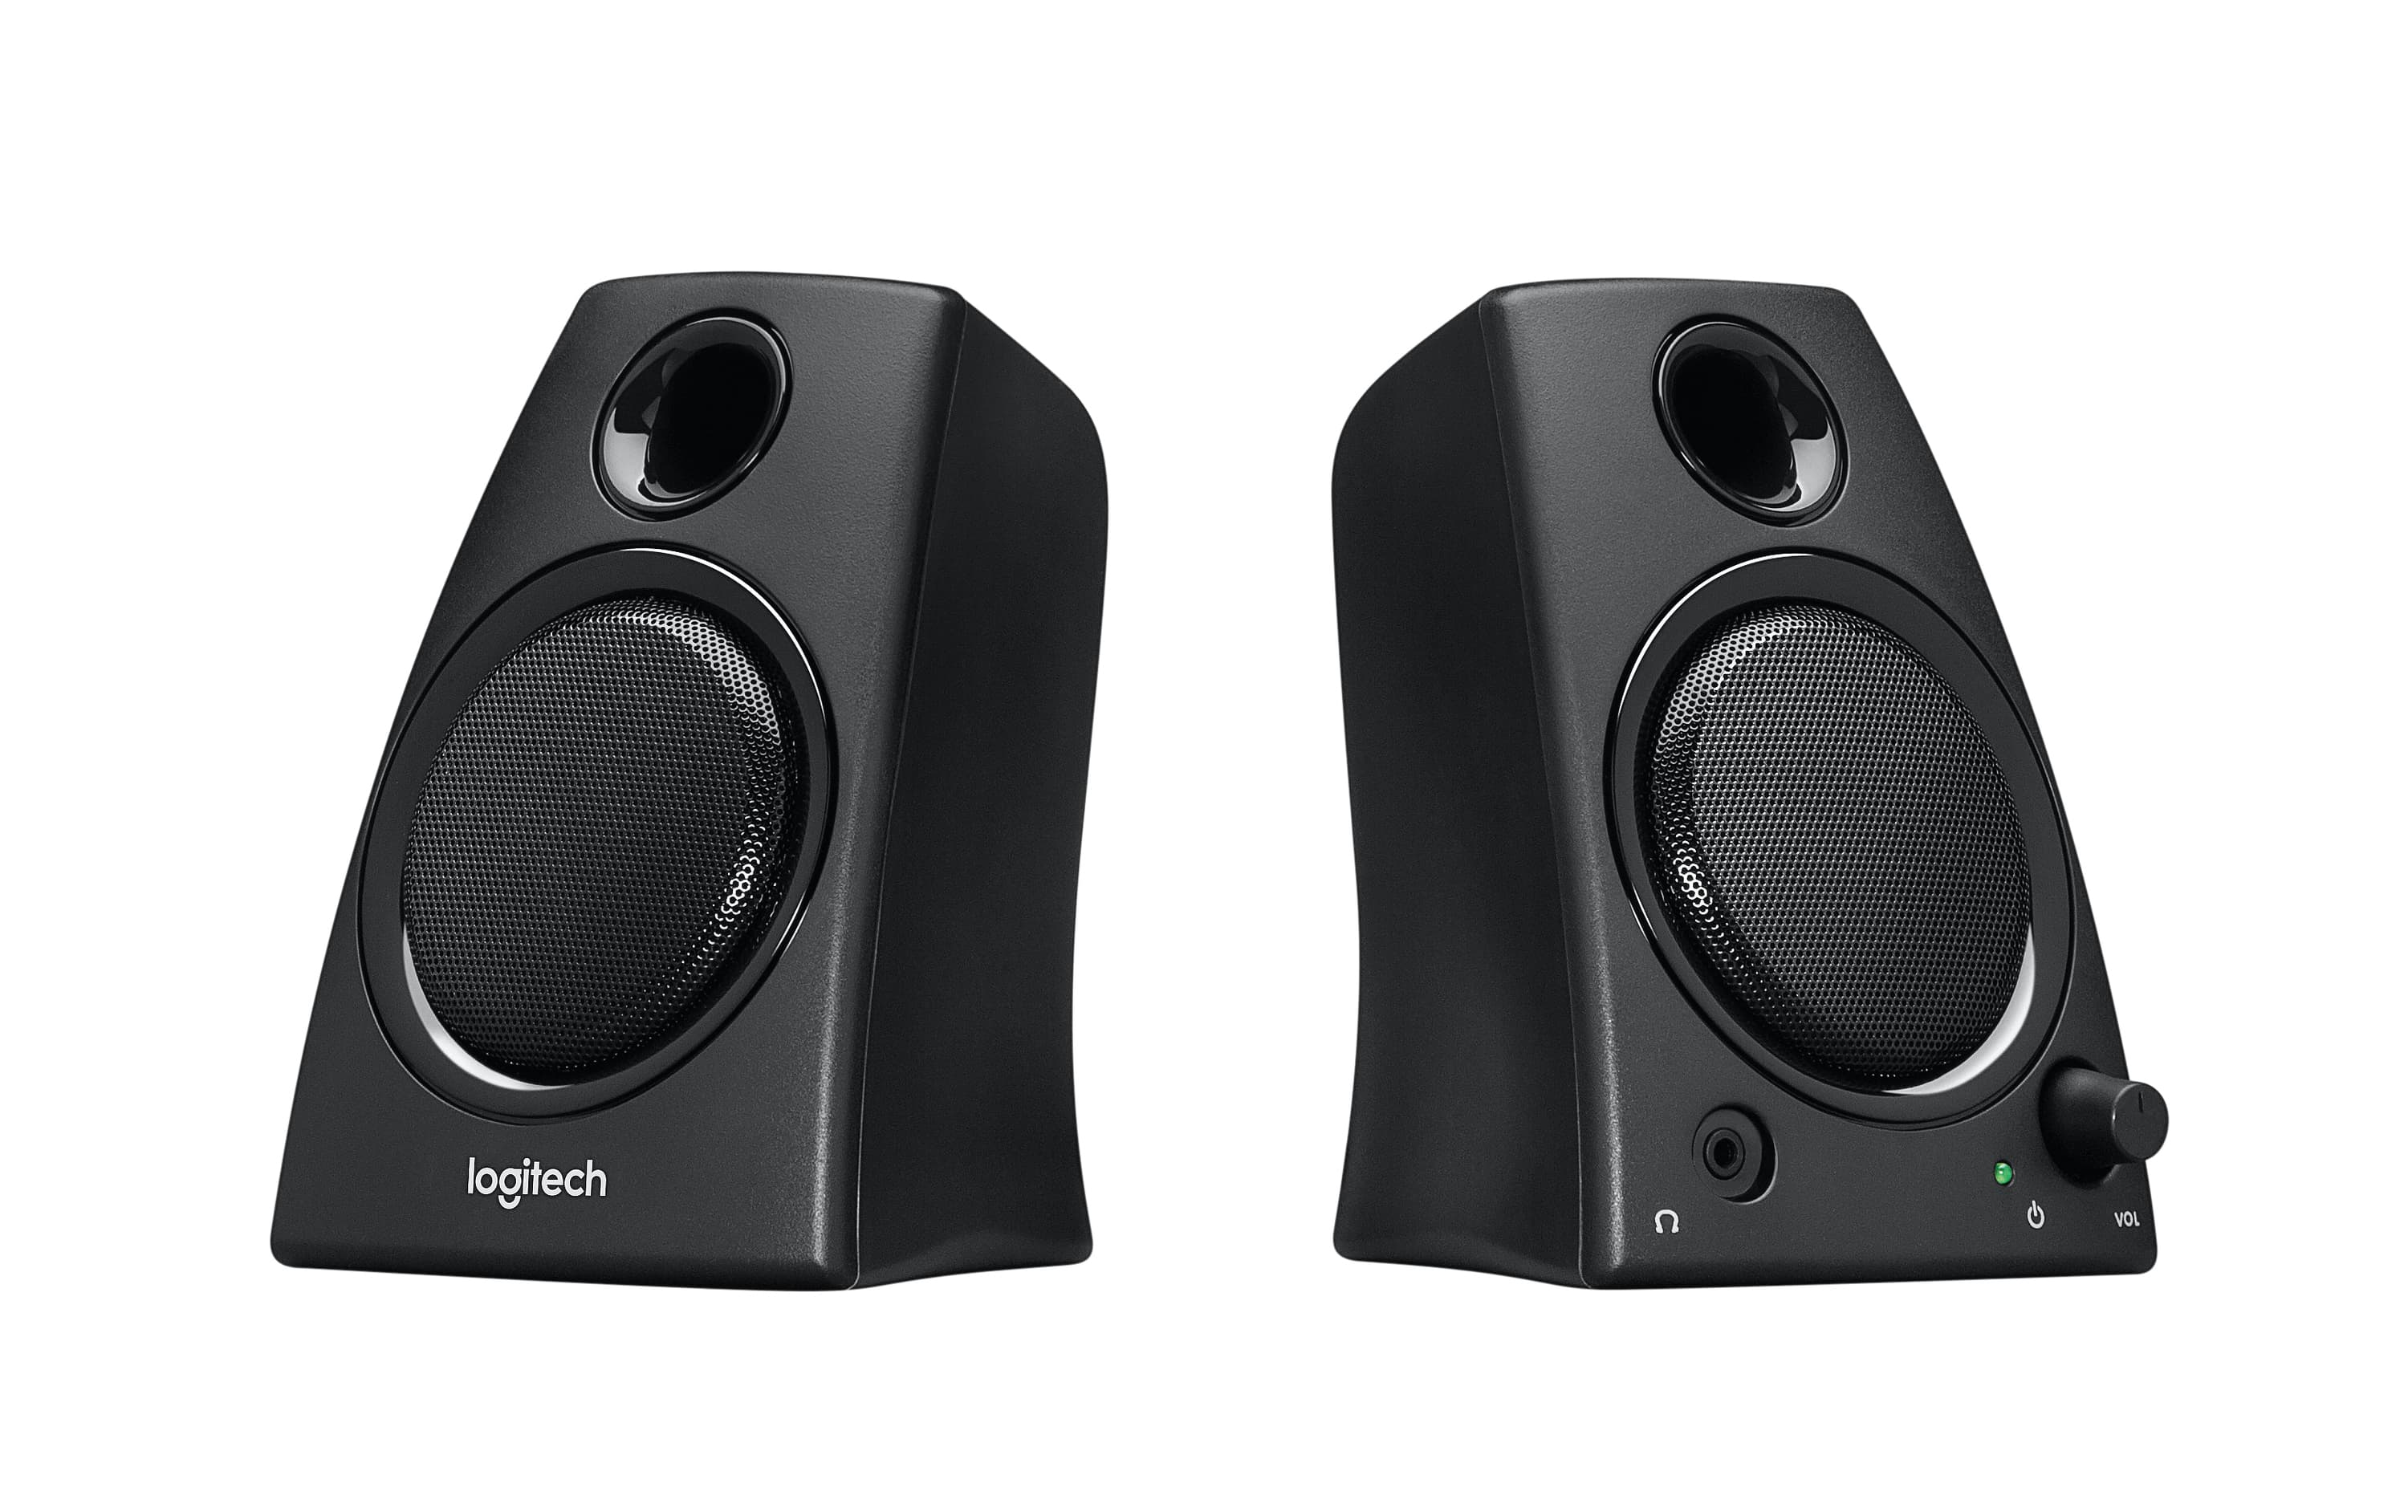 Logitech Z130 Kompaktes Pc Von Expert Technomarkt Z120 Usb Stereo Speaker For Laptop Notebook 20 Lautsprechersystem